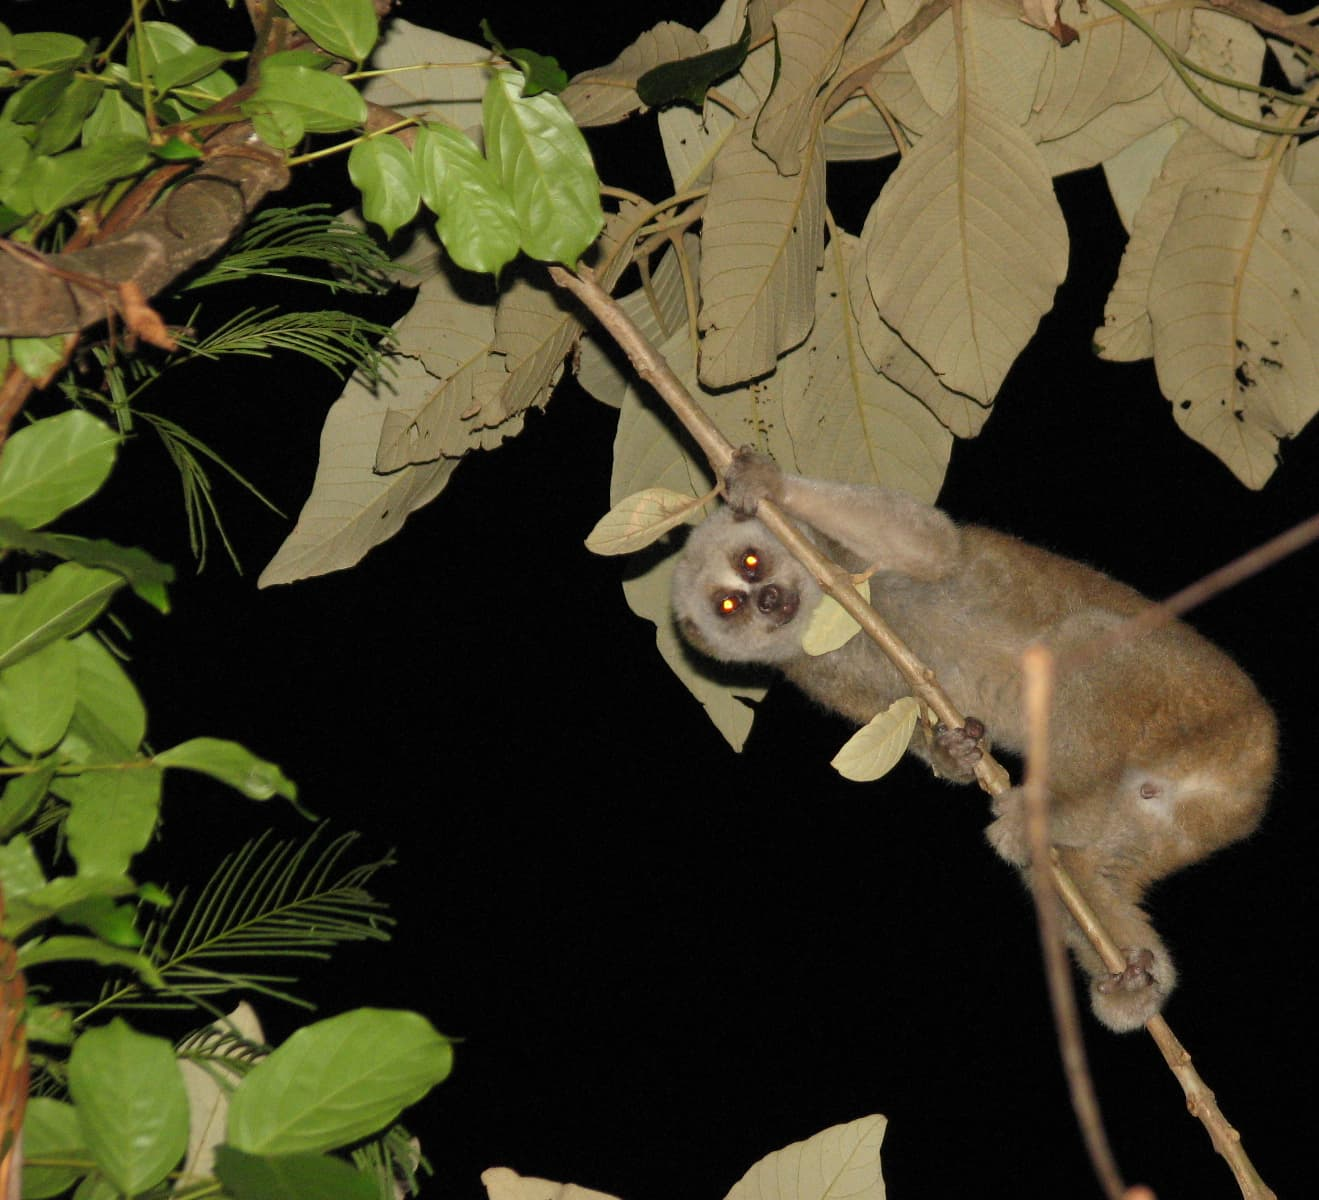 Bengal Slow Loris: The Fiery-Eyed Wonder of the Night